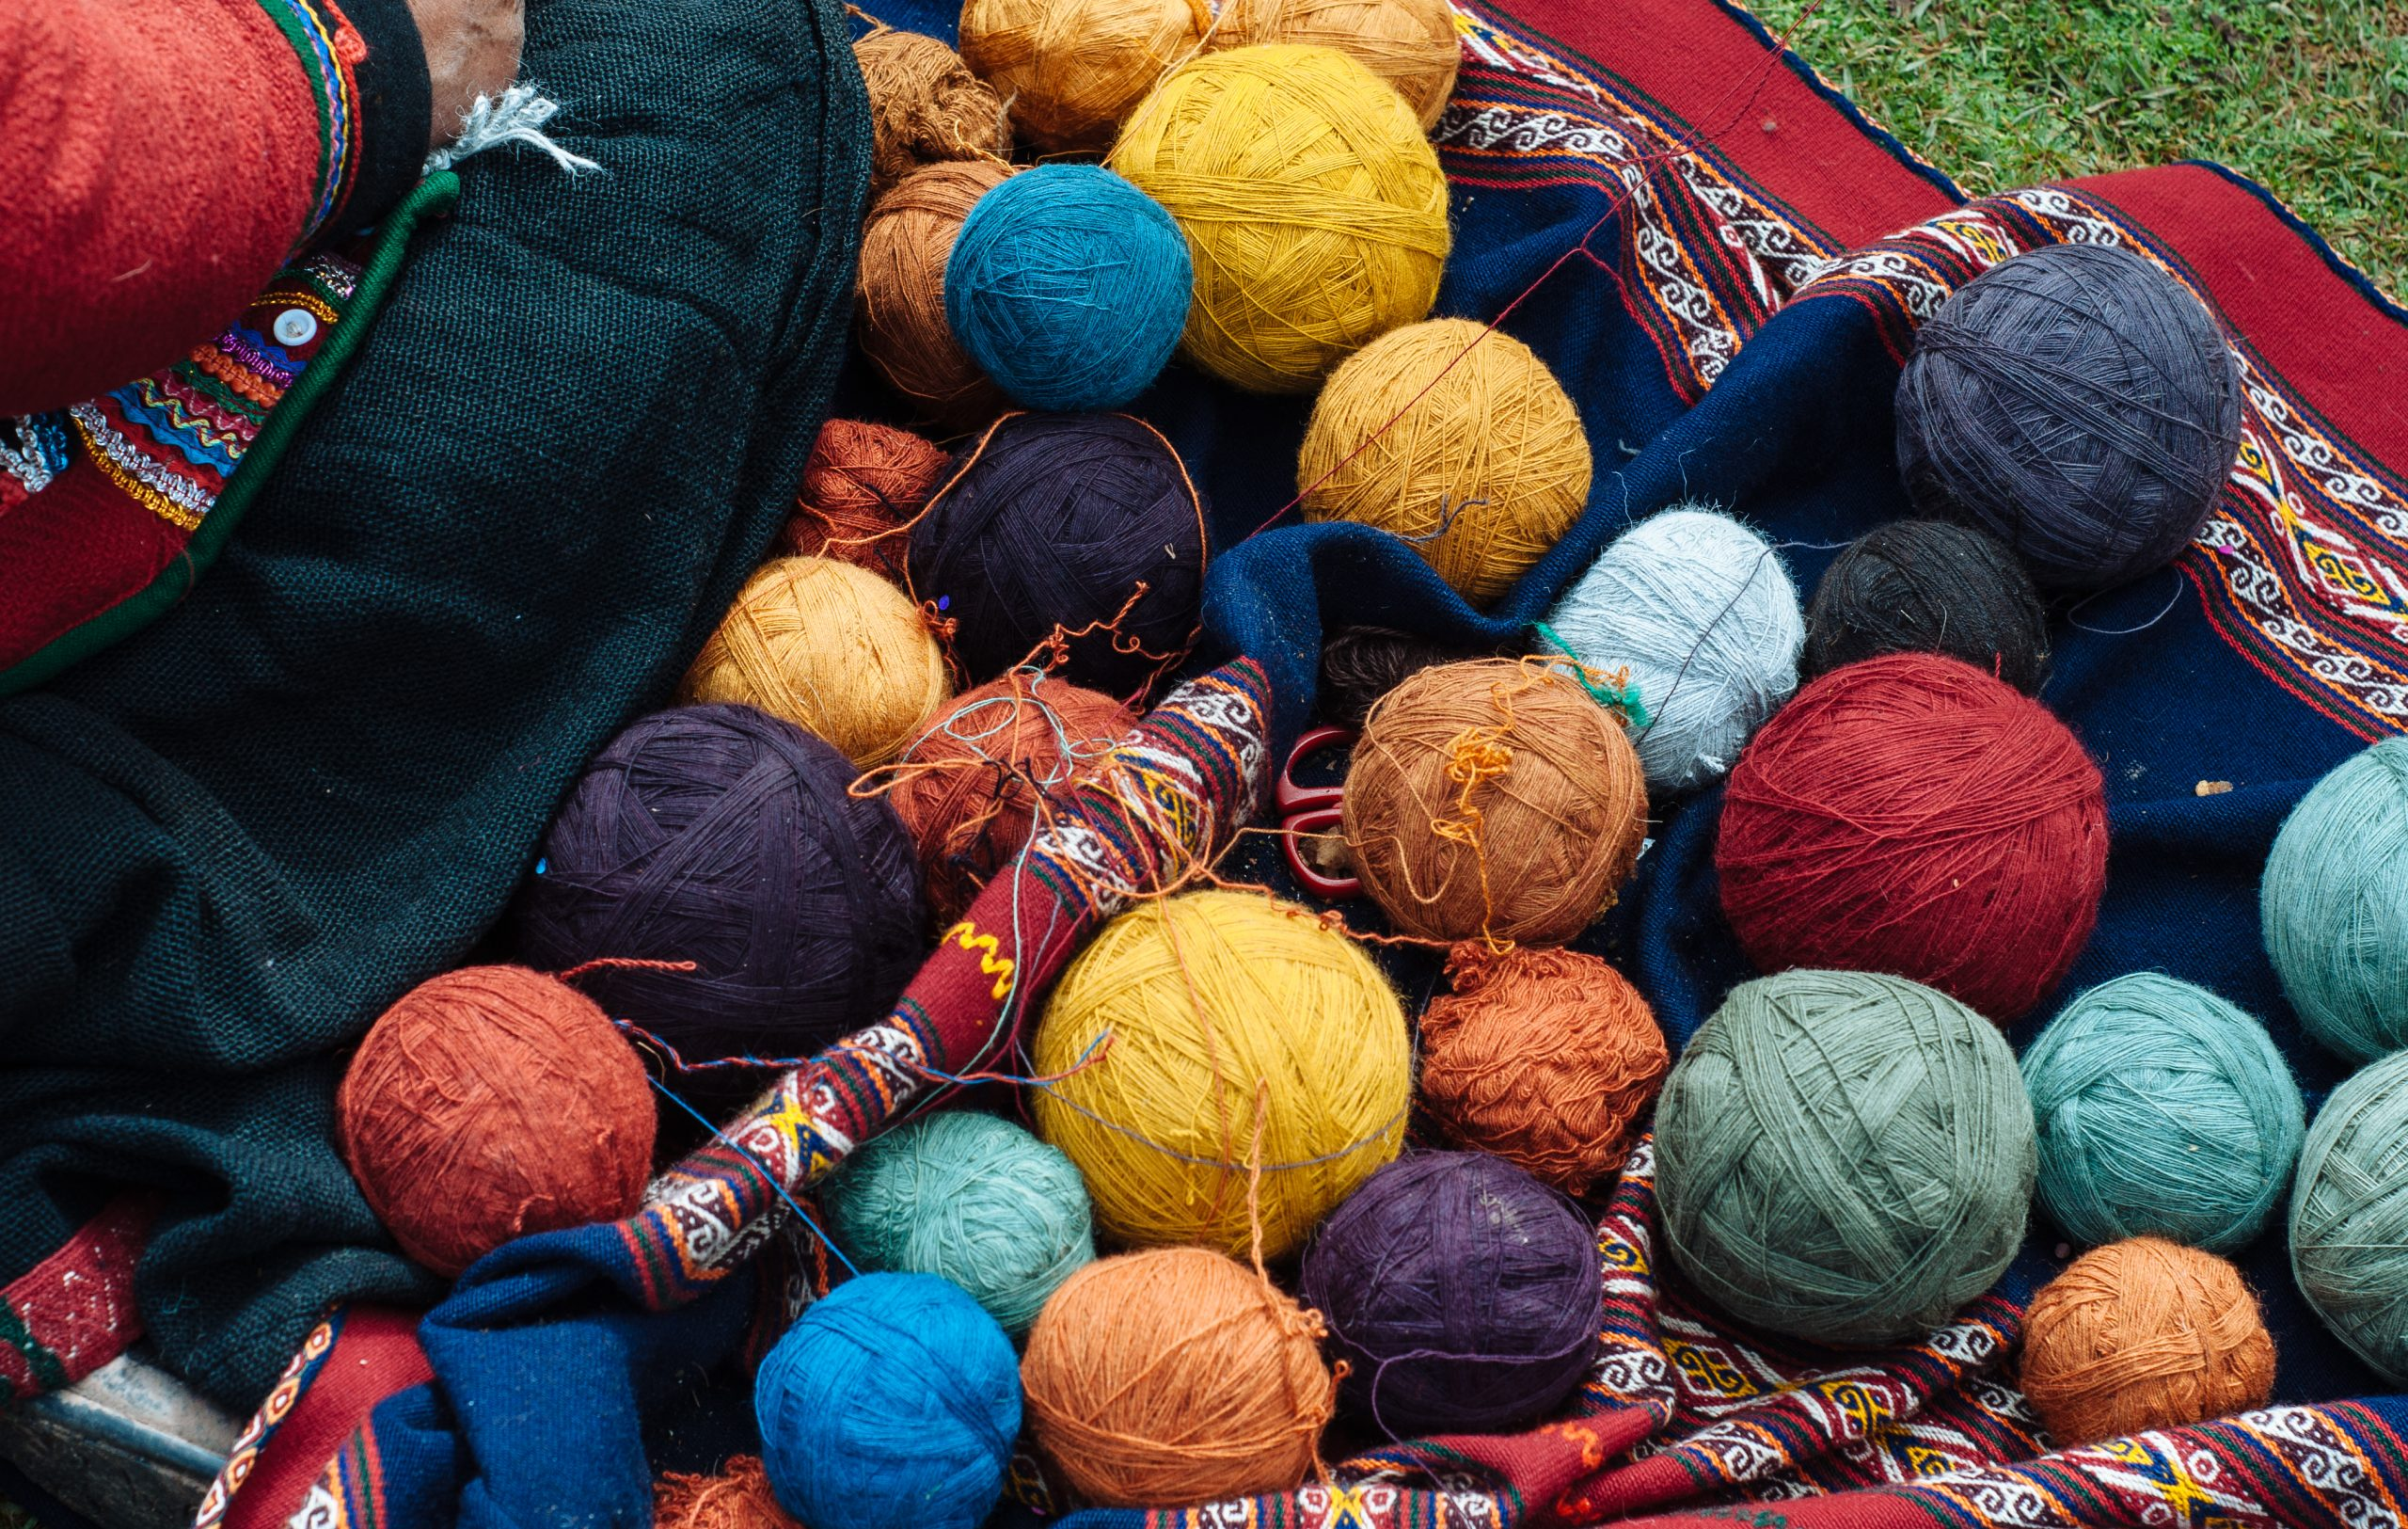 An array of colorful yarn used to create beautiful textiles